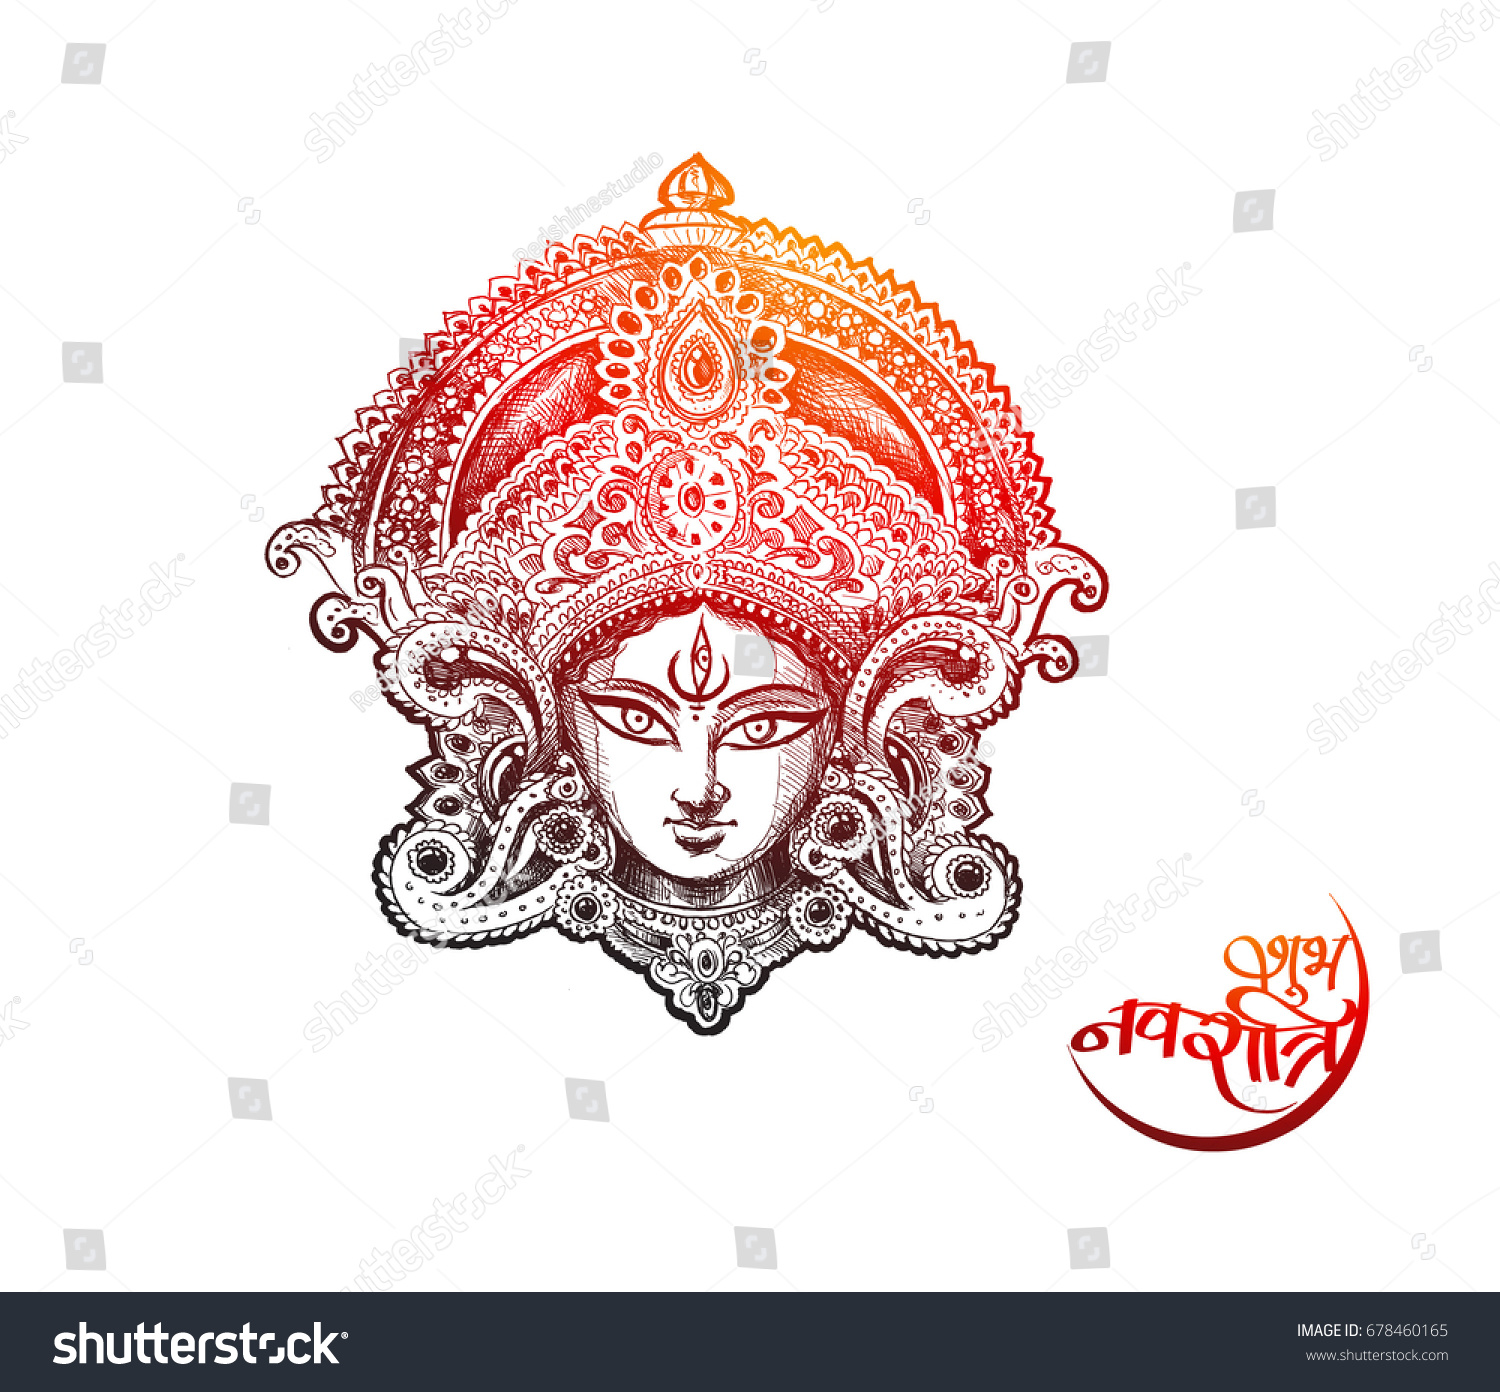 Happy navratri vector illustration based on beautiful background with maa durga face and kalash